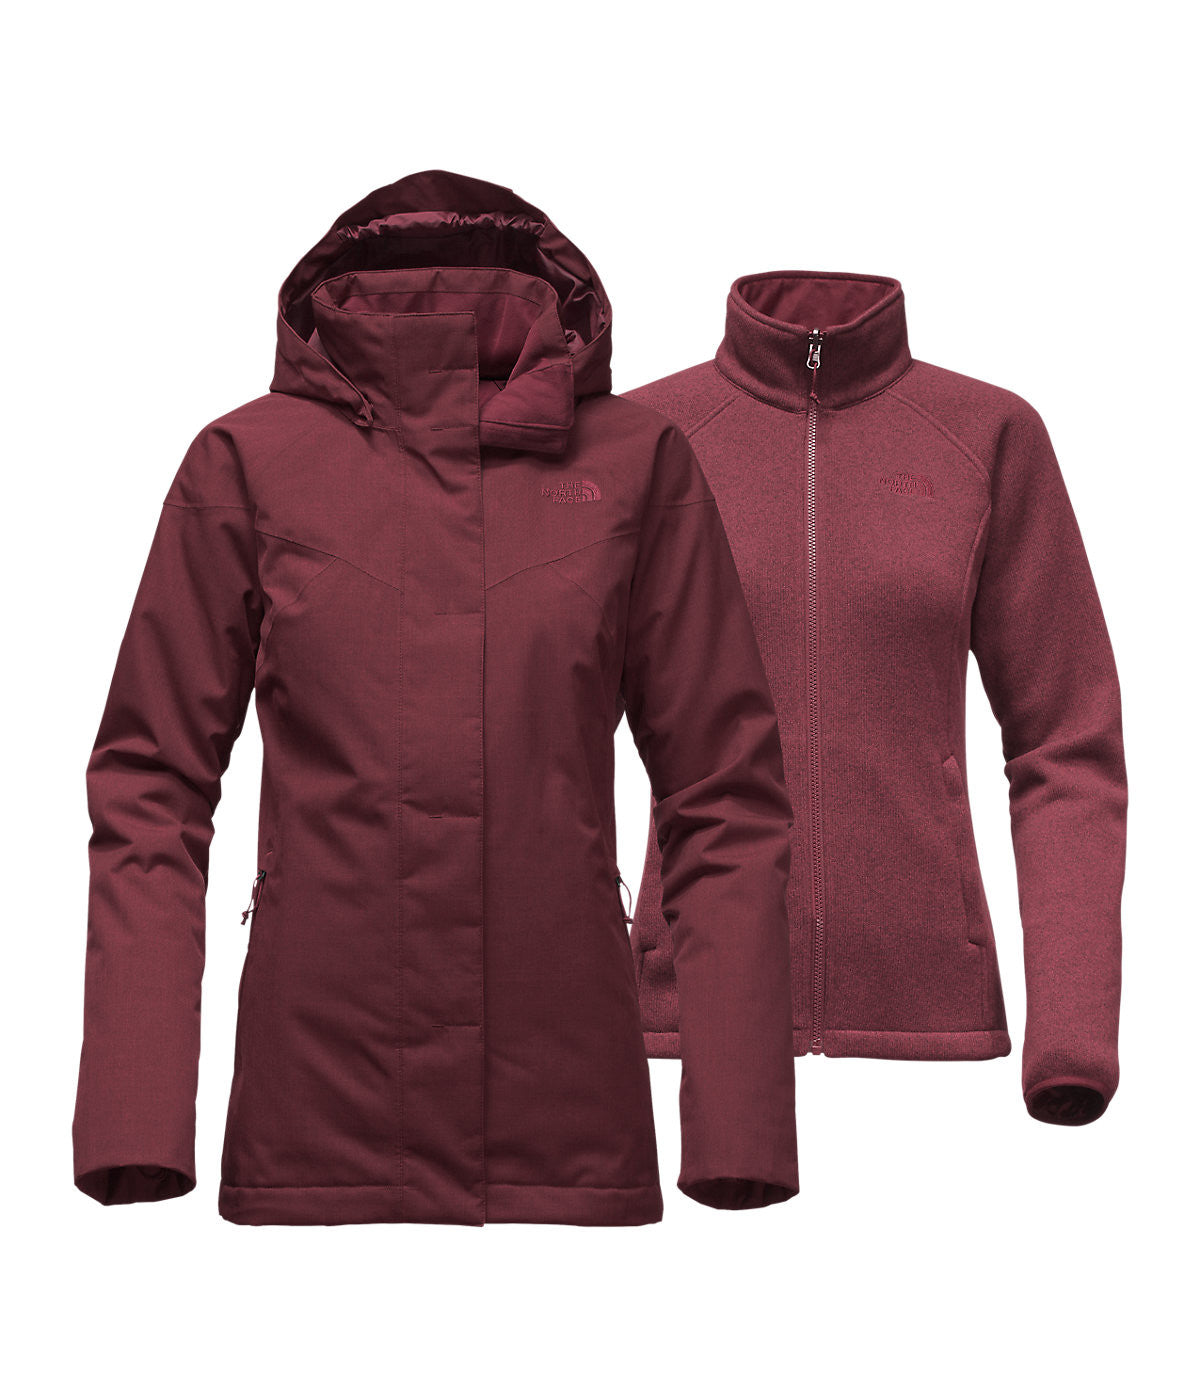 aa95f0ad1 The North Face Kalispell Triclimate Jacket - Women's